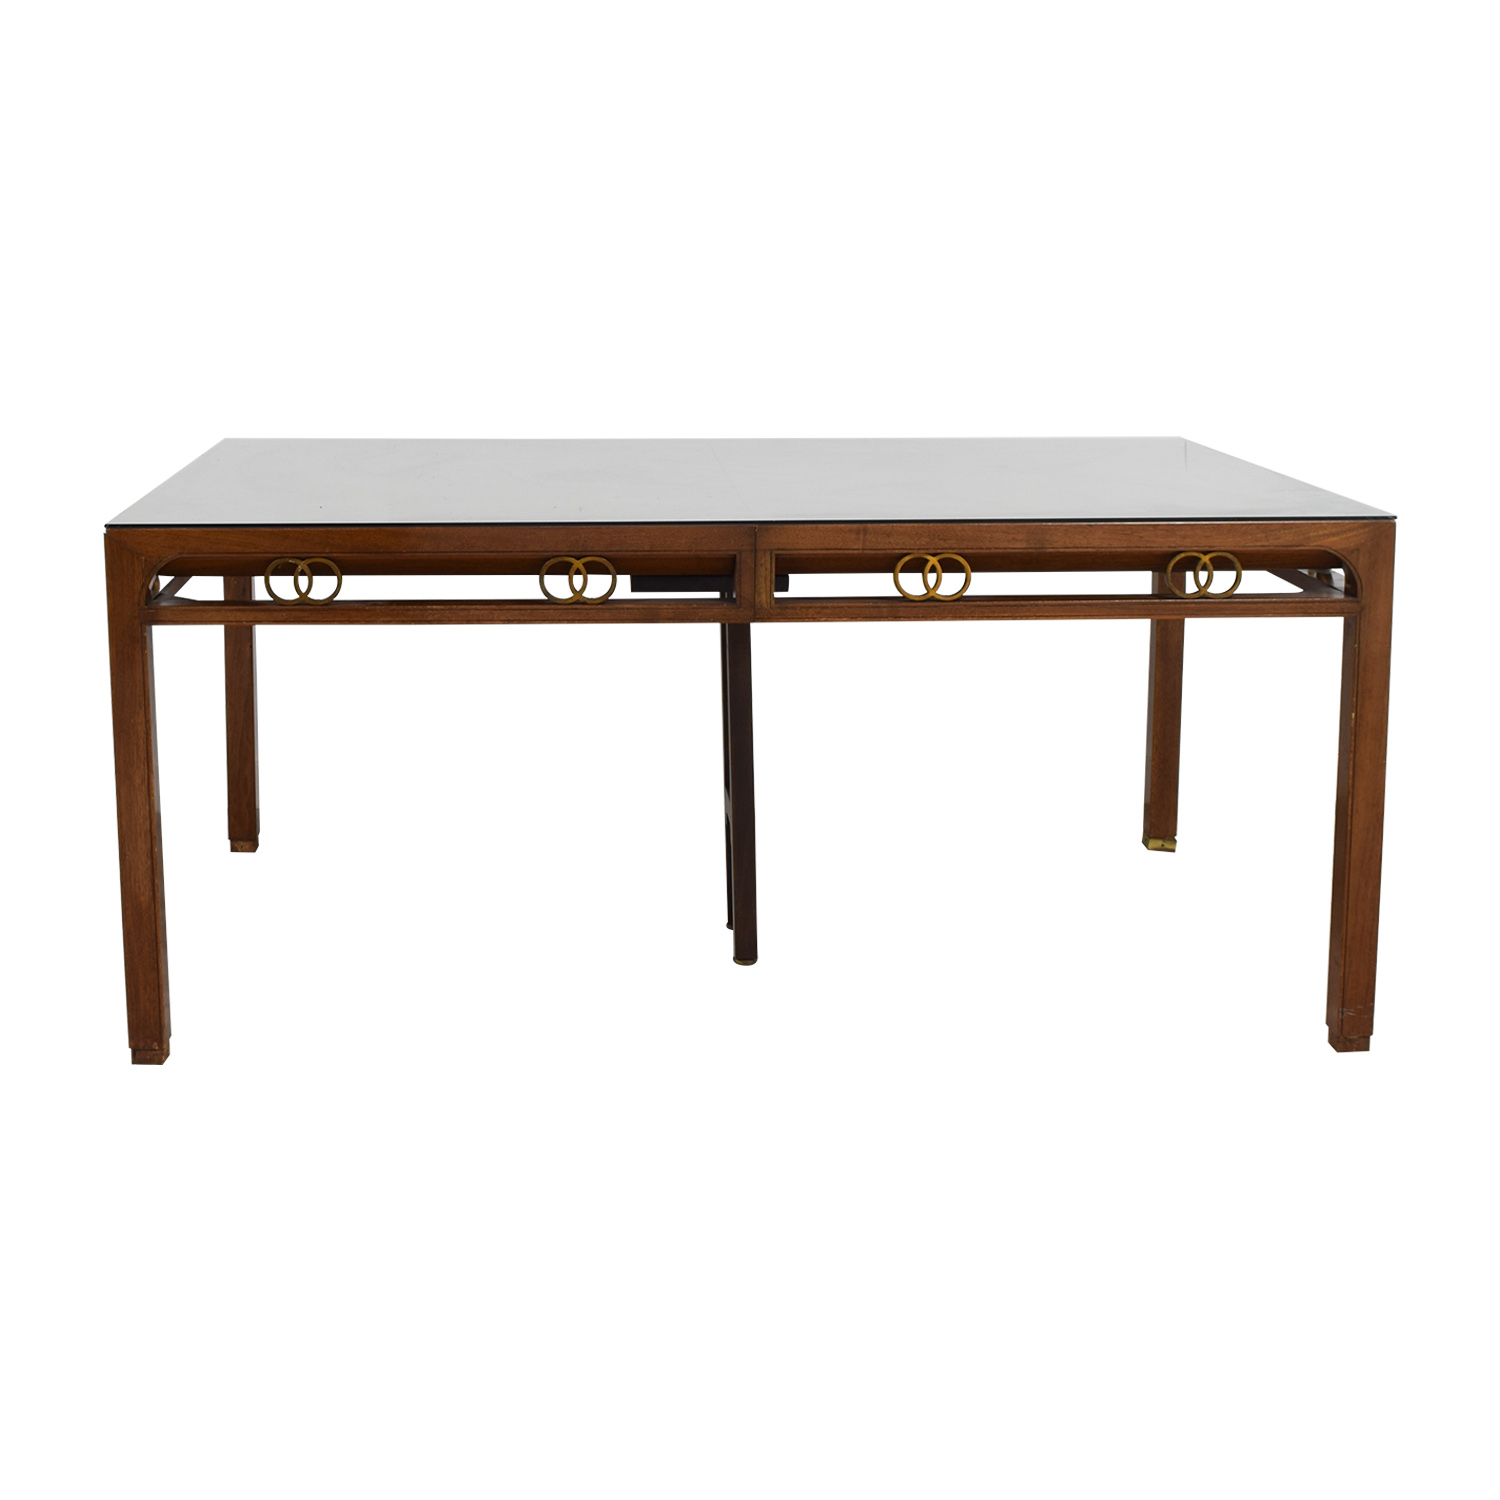 Baker Baker Mid-Century Modern Dining Room Table nj